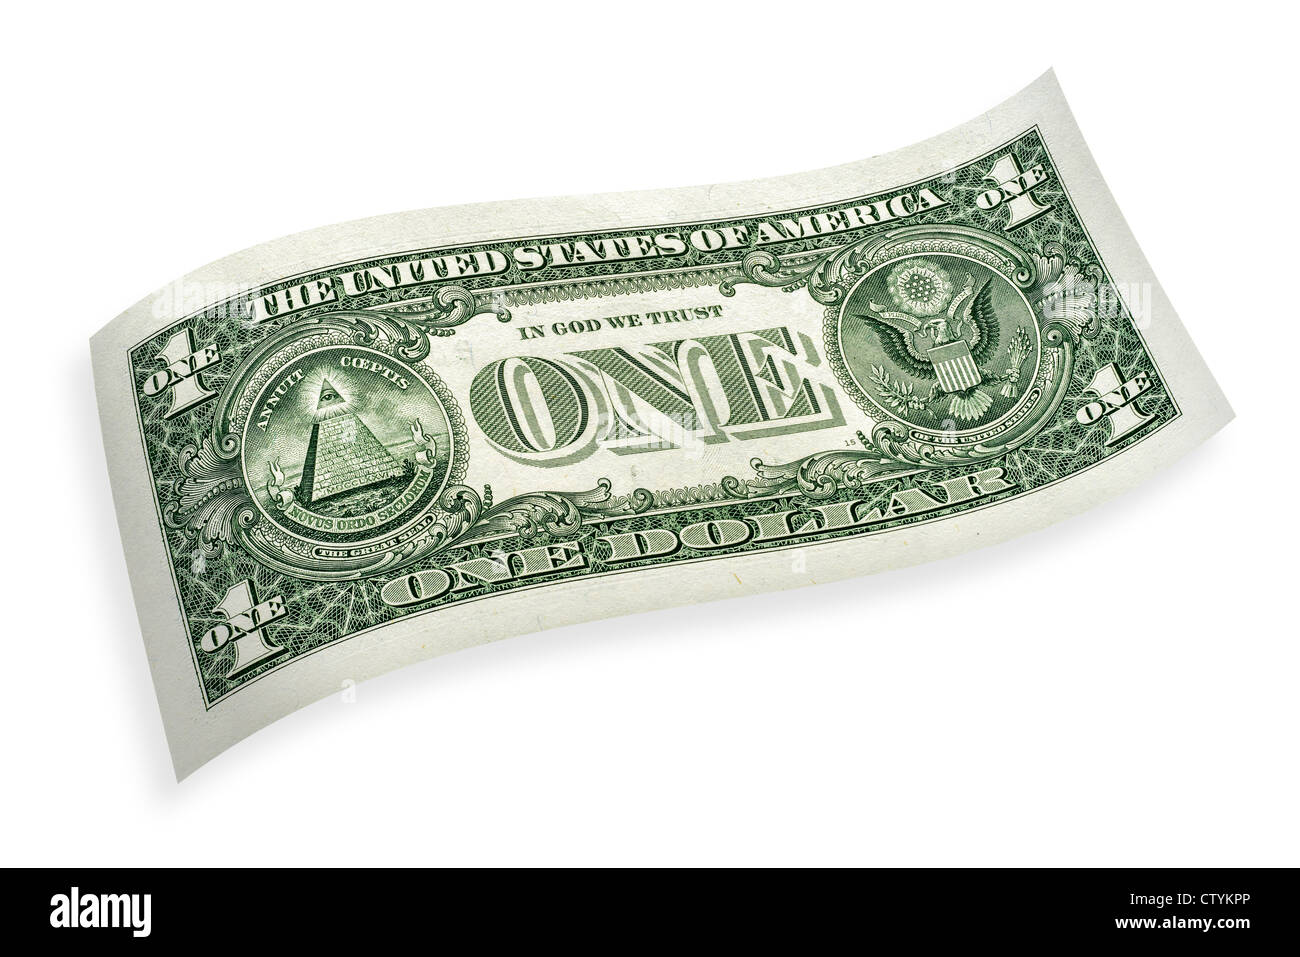 One-dollar-banknote, isolated on 100 % white background curled cut-out - Stock Image